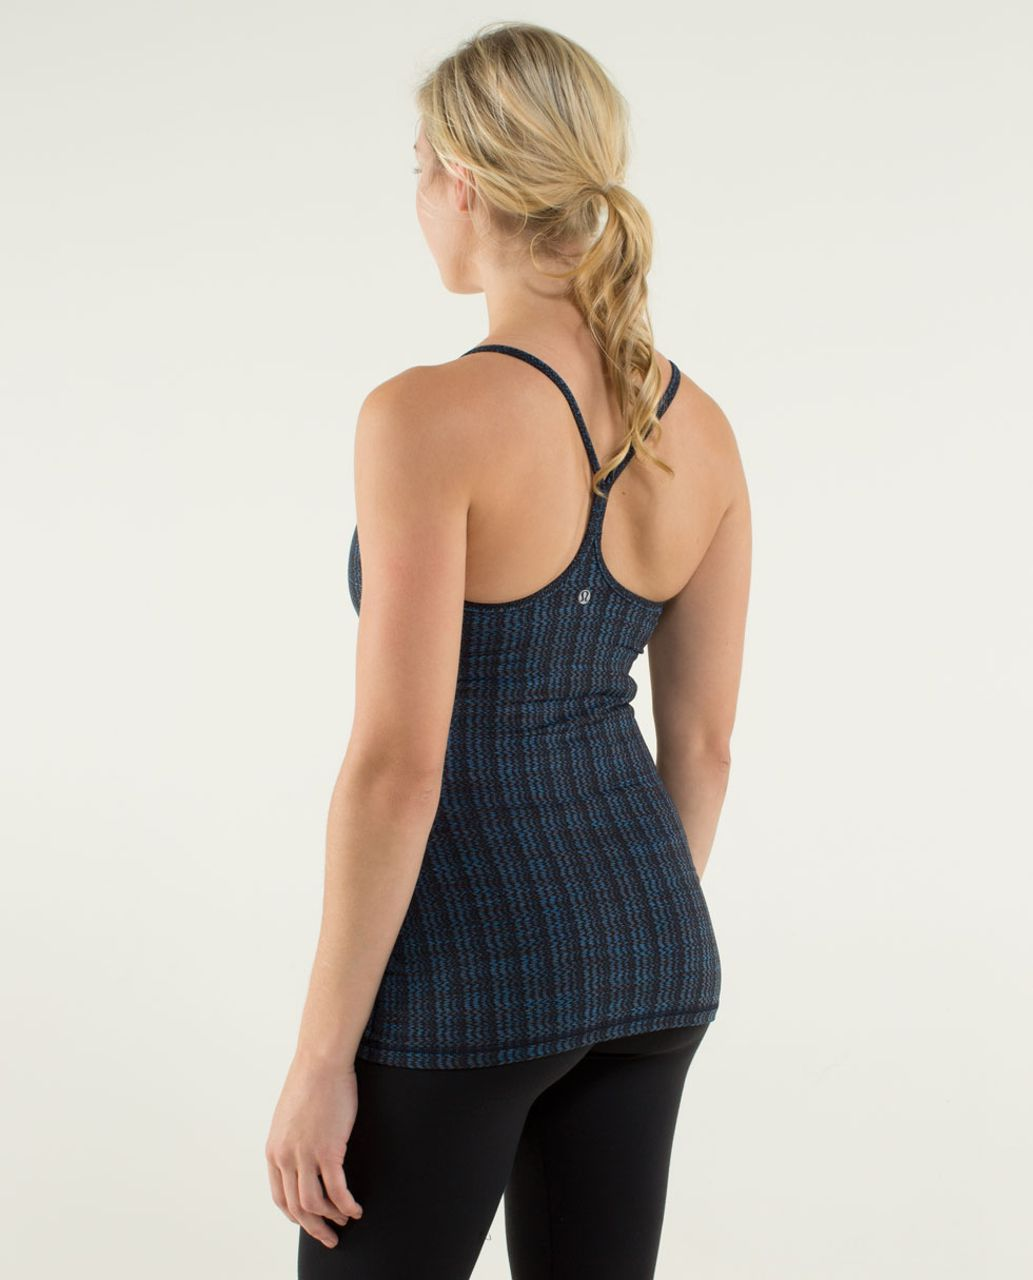 Lululemon Power Y Tank *Luon Light - Ziggy Wee October Inkwell / Inkwell